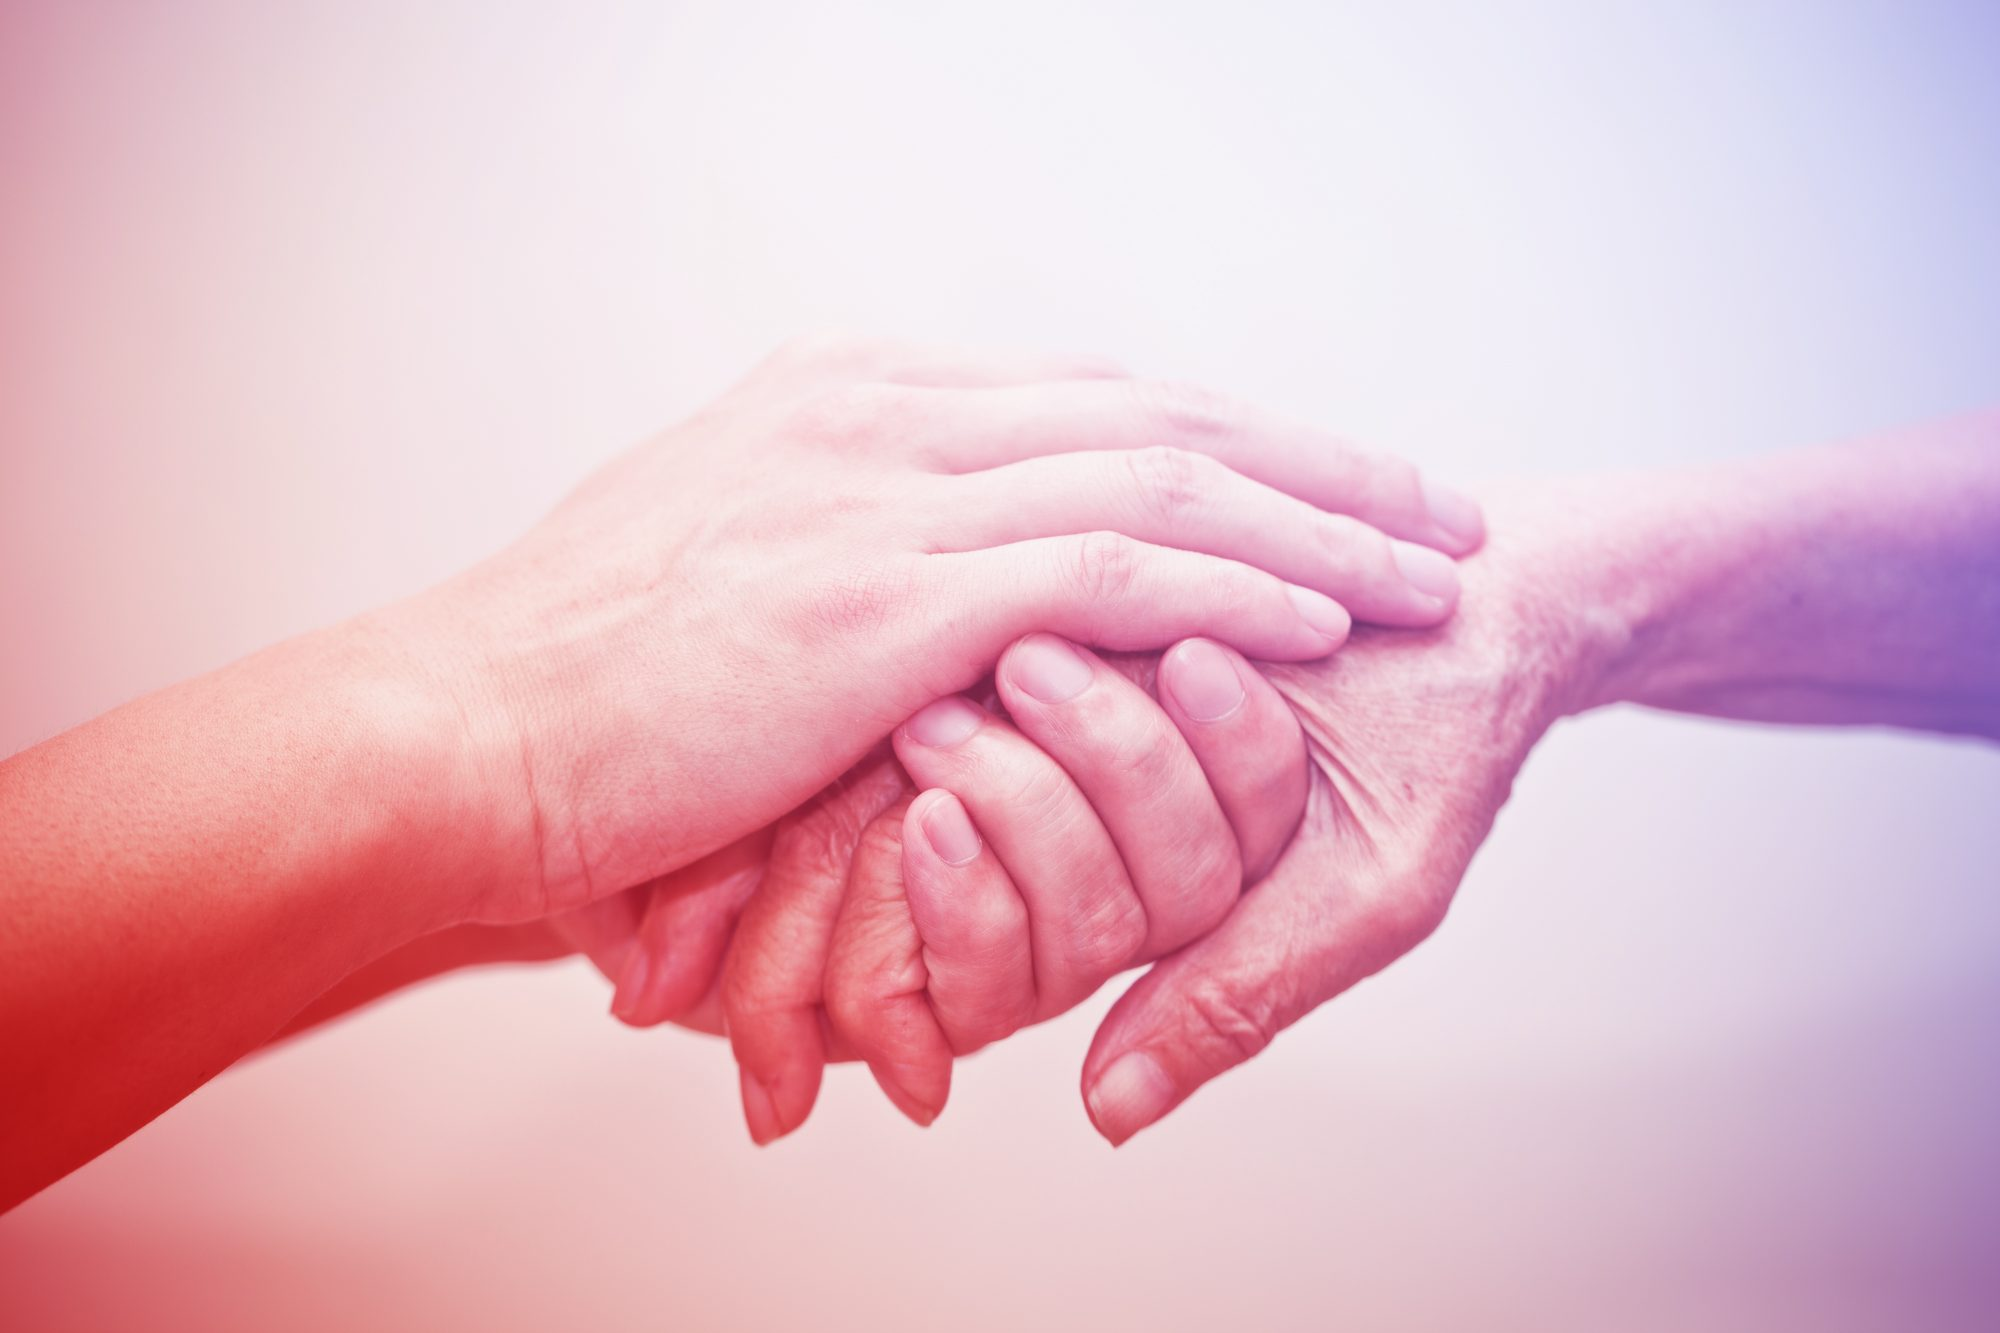 5 Common Challenges Care-Givers Face, and How to Handle Them